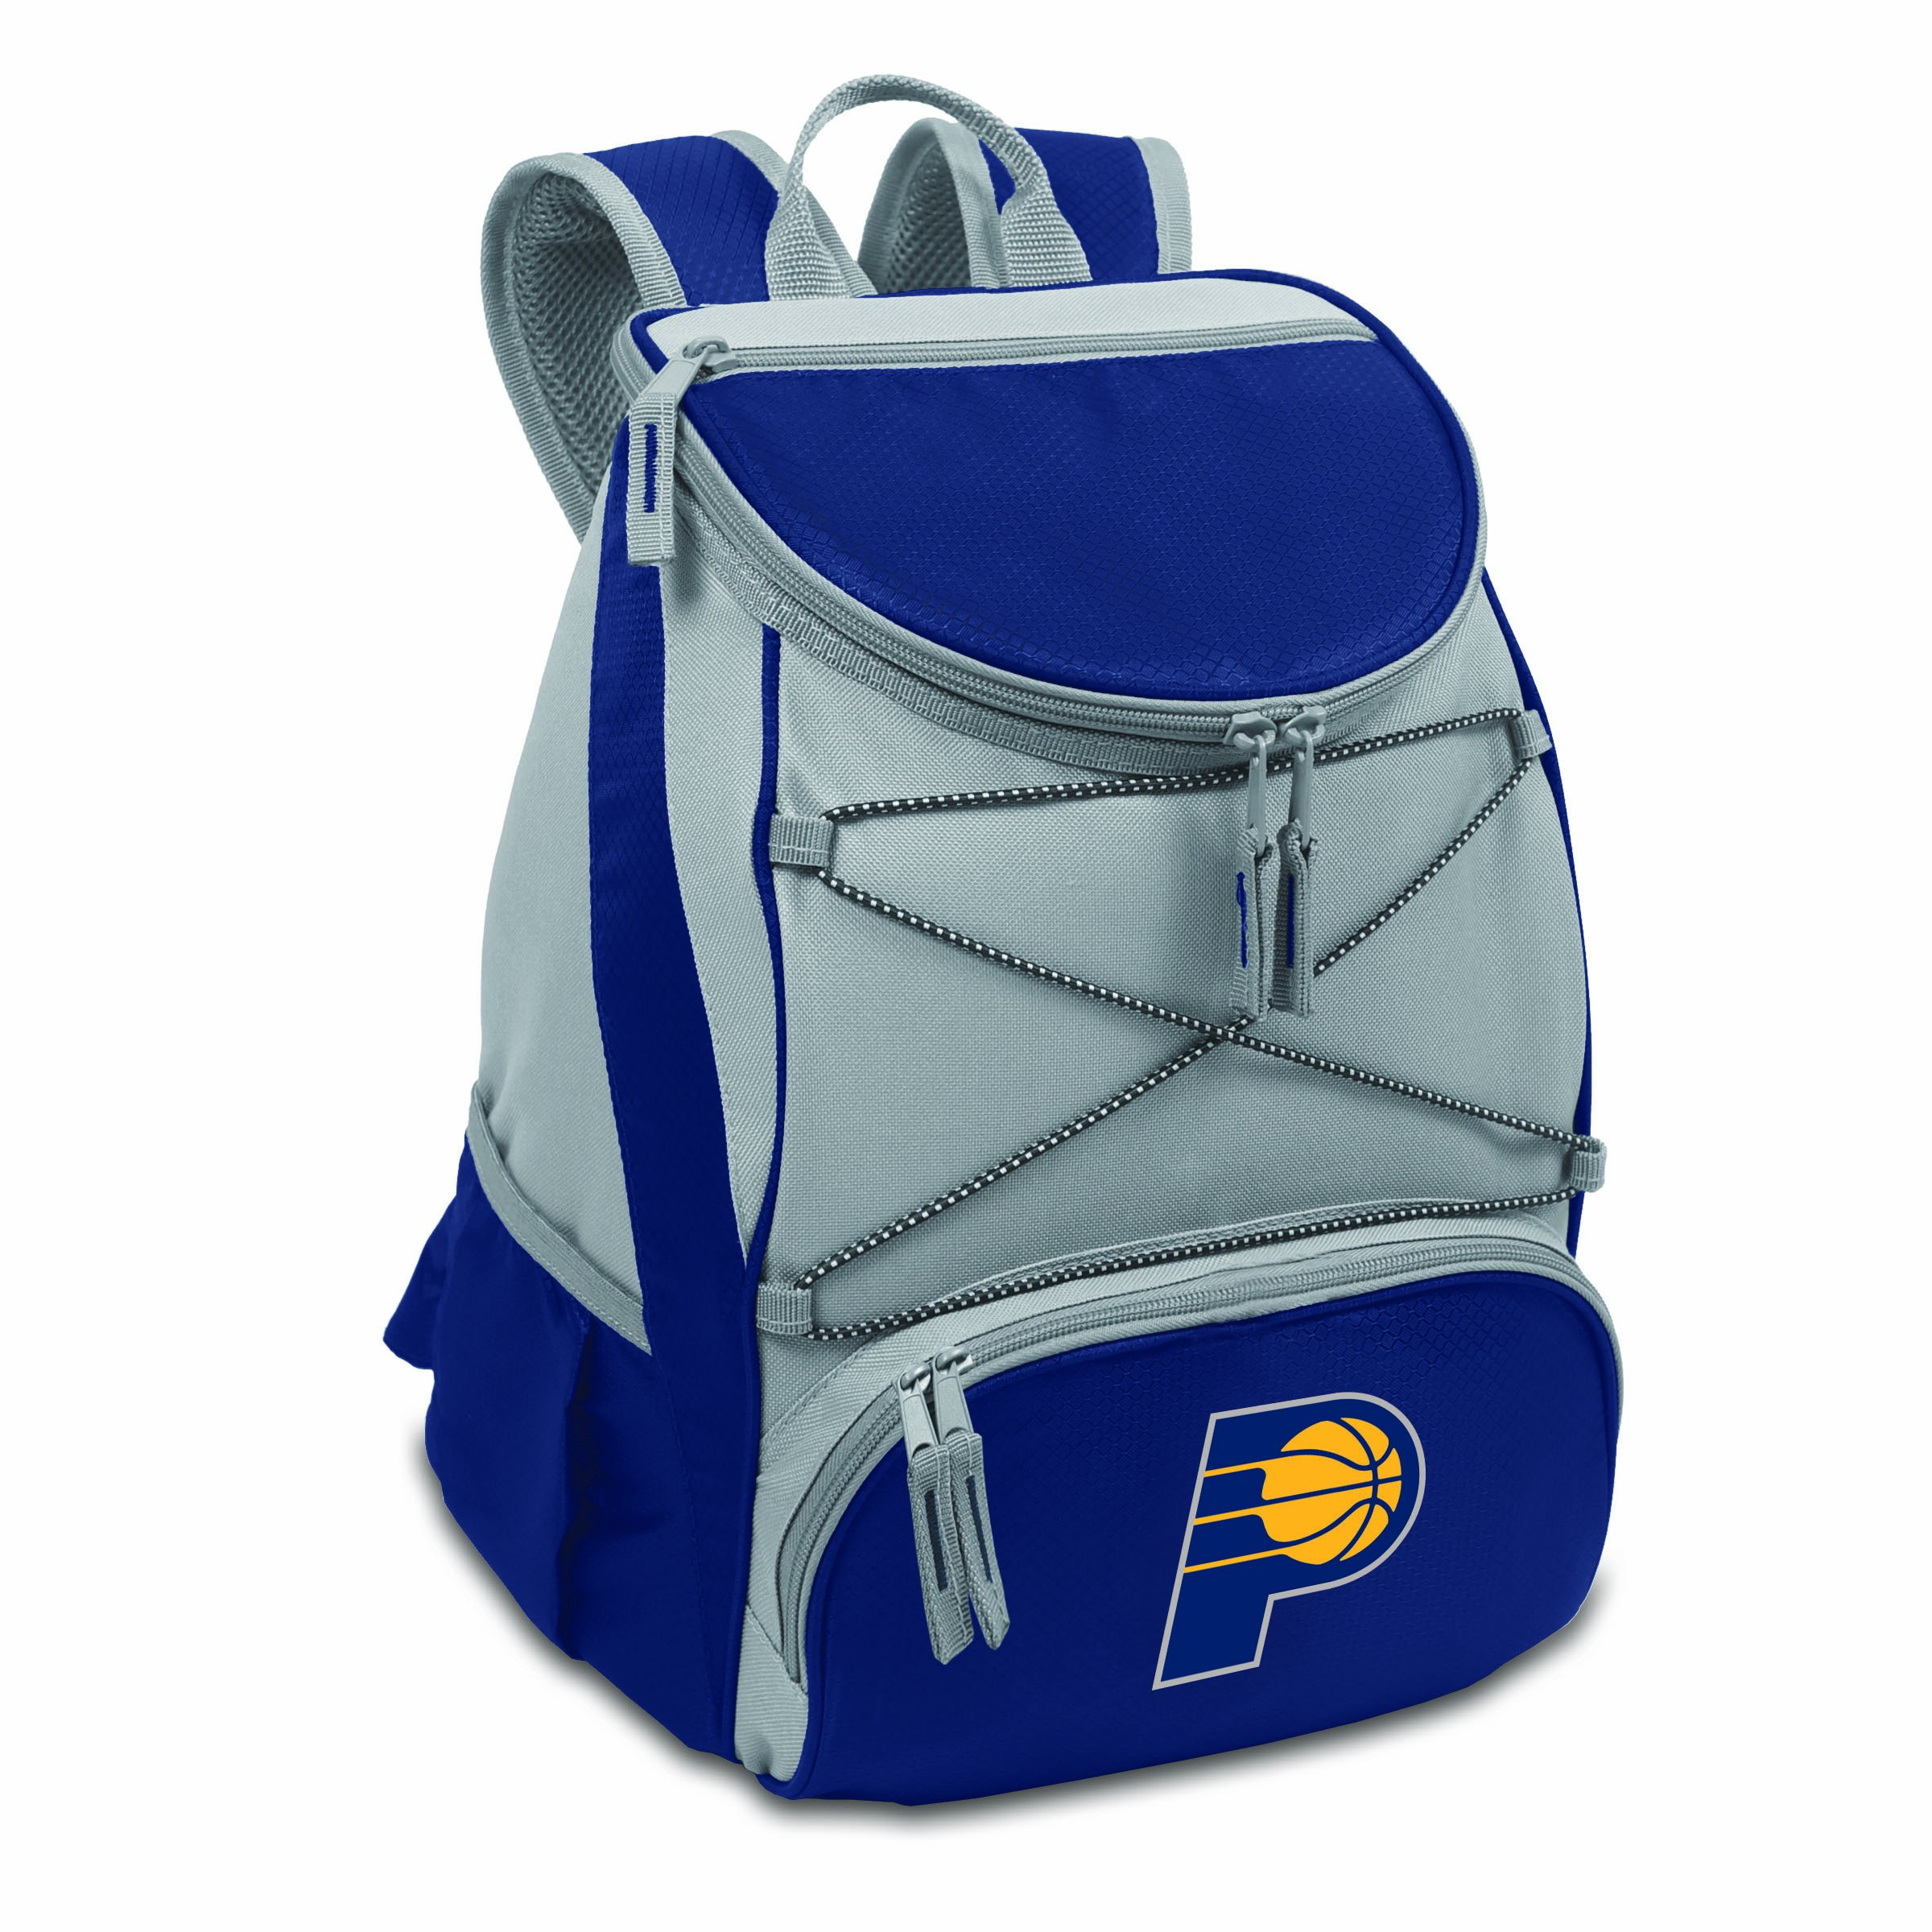 PICNIC TIME NBA Indiana Pacers PTX Insulated Backpack Cooler by PICNIC TIME